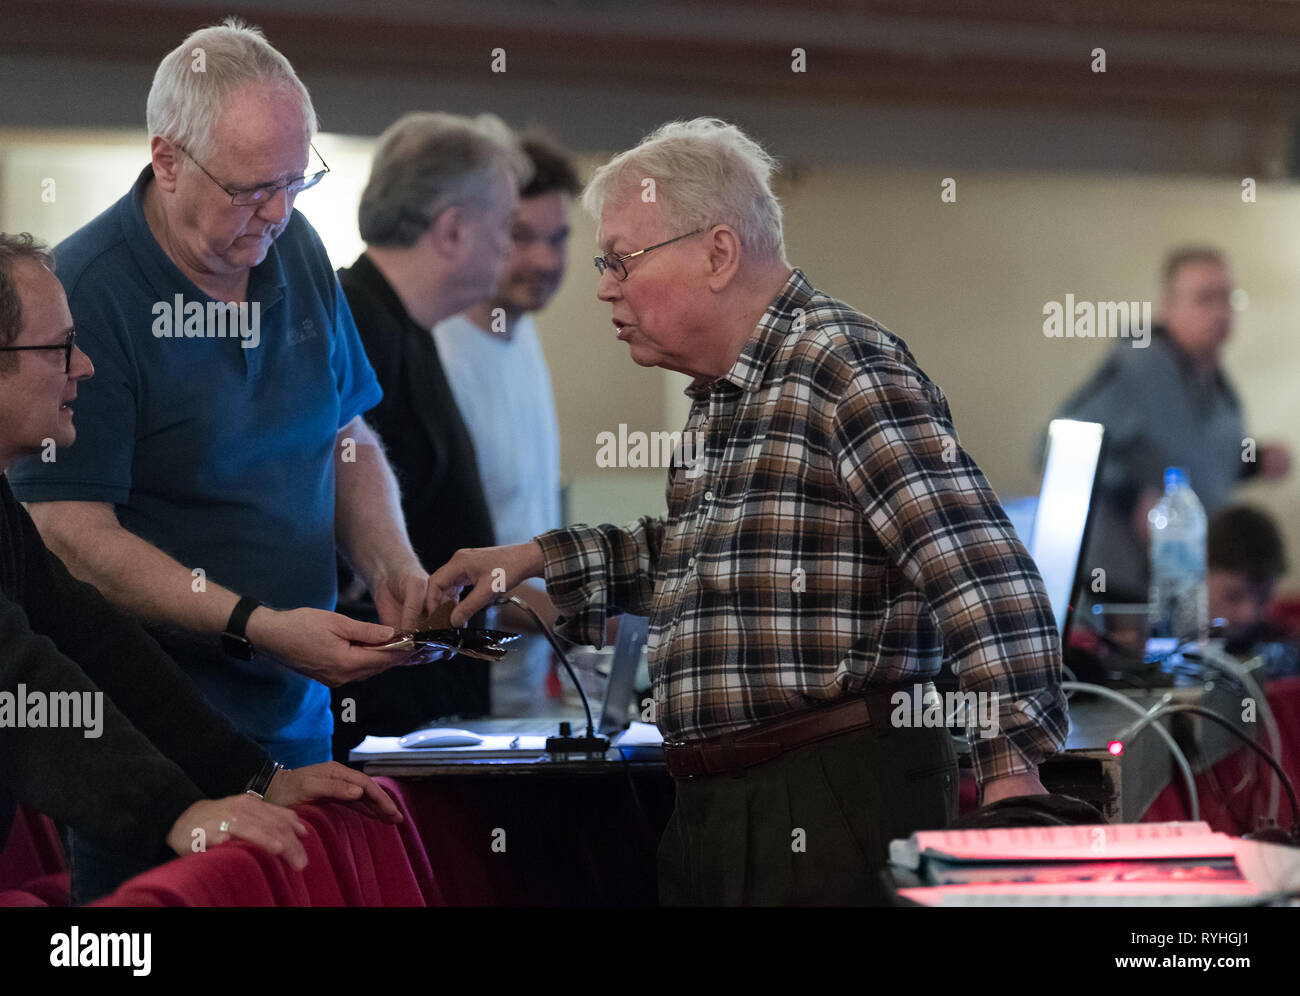 Berlin, Germany. 13th Mar, 2019. Director Harry Kupfer (r) during the photo rehearsal of Handel's opera 'Poros' at the Komische Oper. Premiere is on 16.03.2019. Credit: Soeren Stache/dpa/Alamy Live News - Stock Image